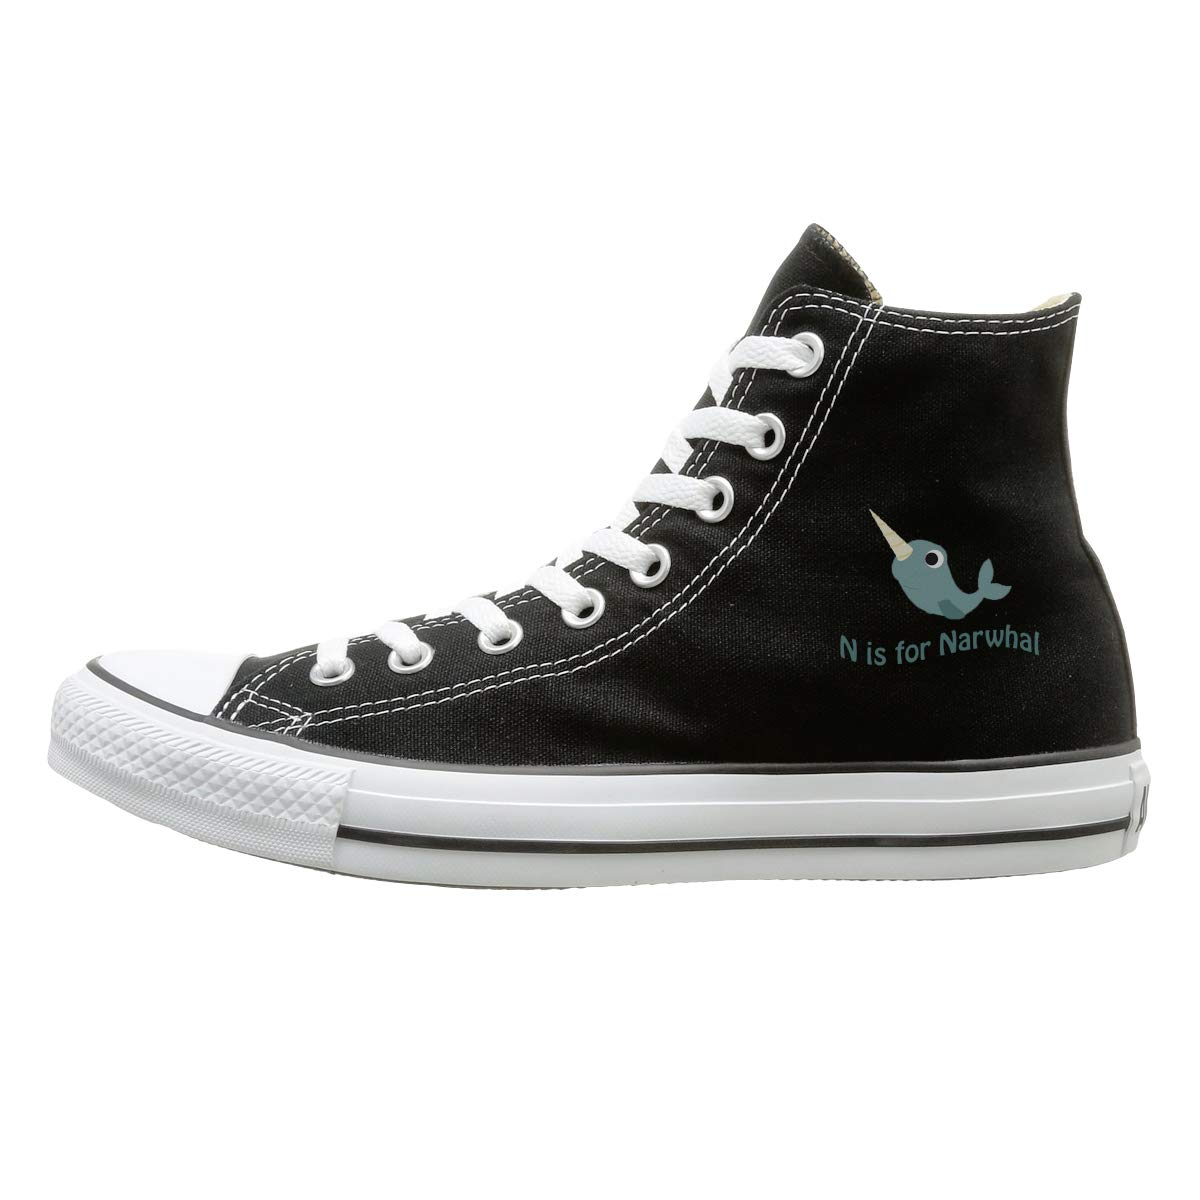 Sakanpo N is for Narwhal Canvas Shoes High Top Casual Black Sneakers Unisex Style